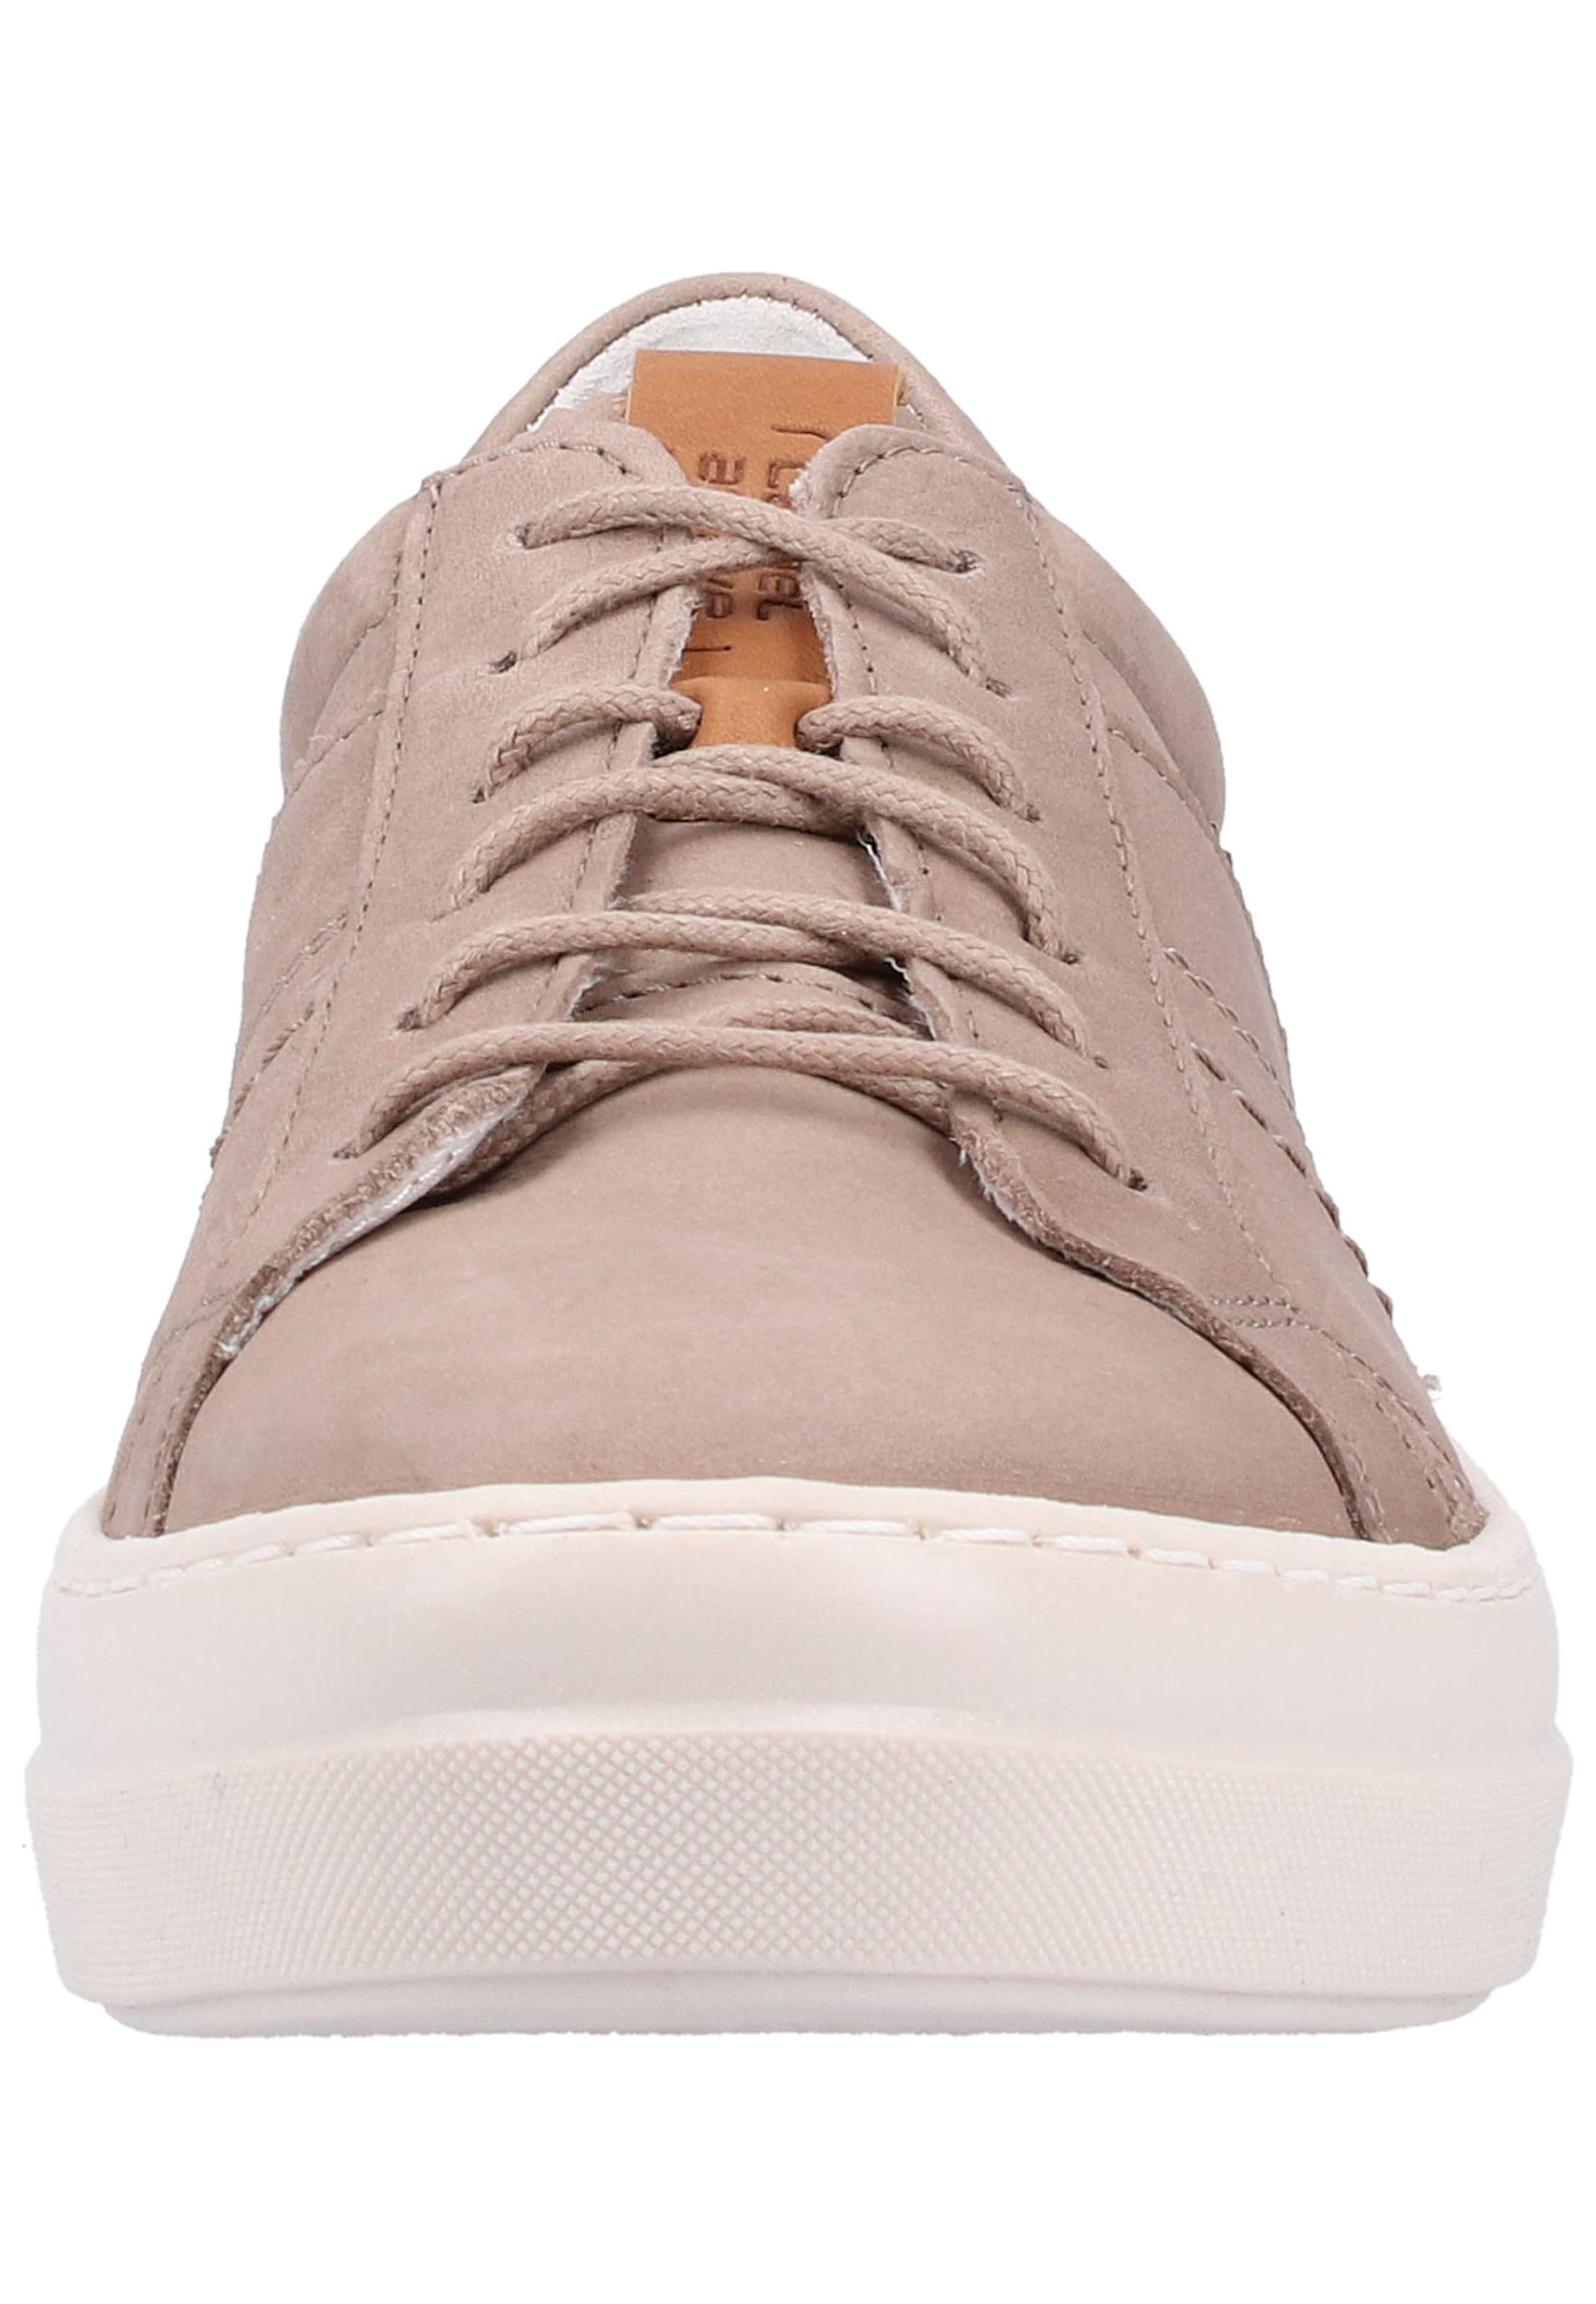 Camel Taupe Camel Active Active Sneaker In FJ1TlKc3